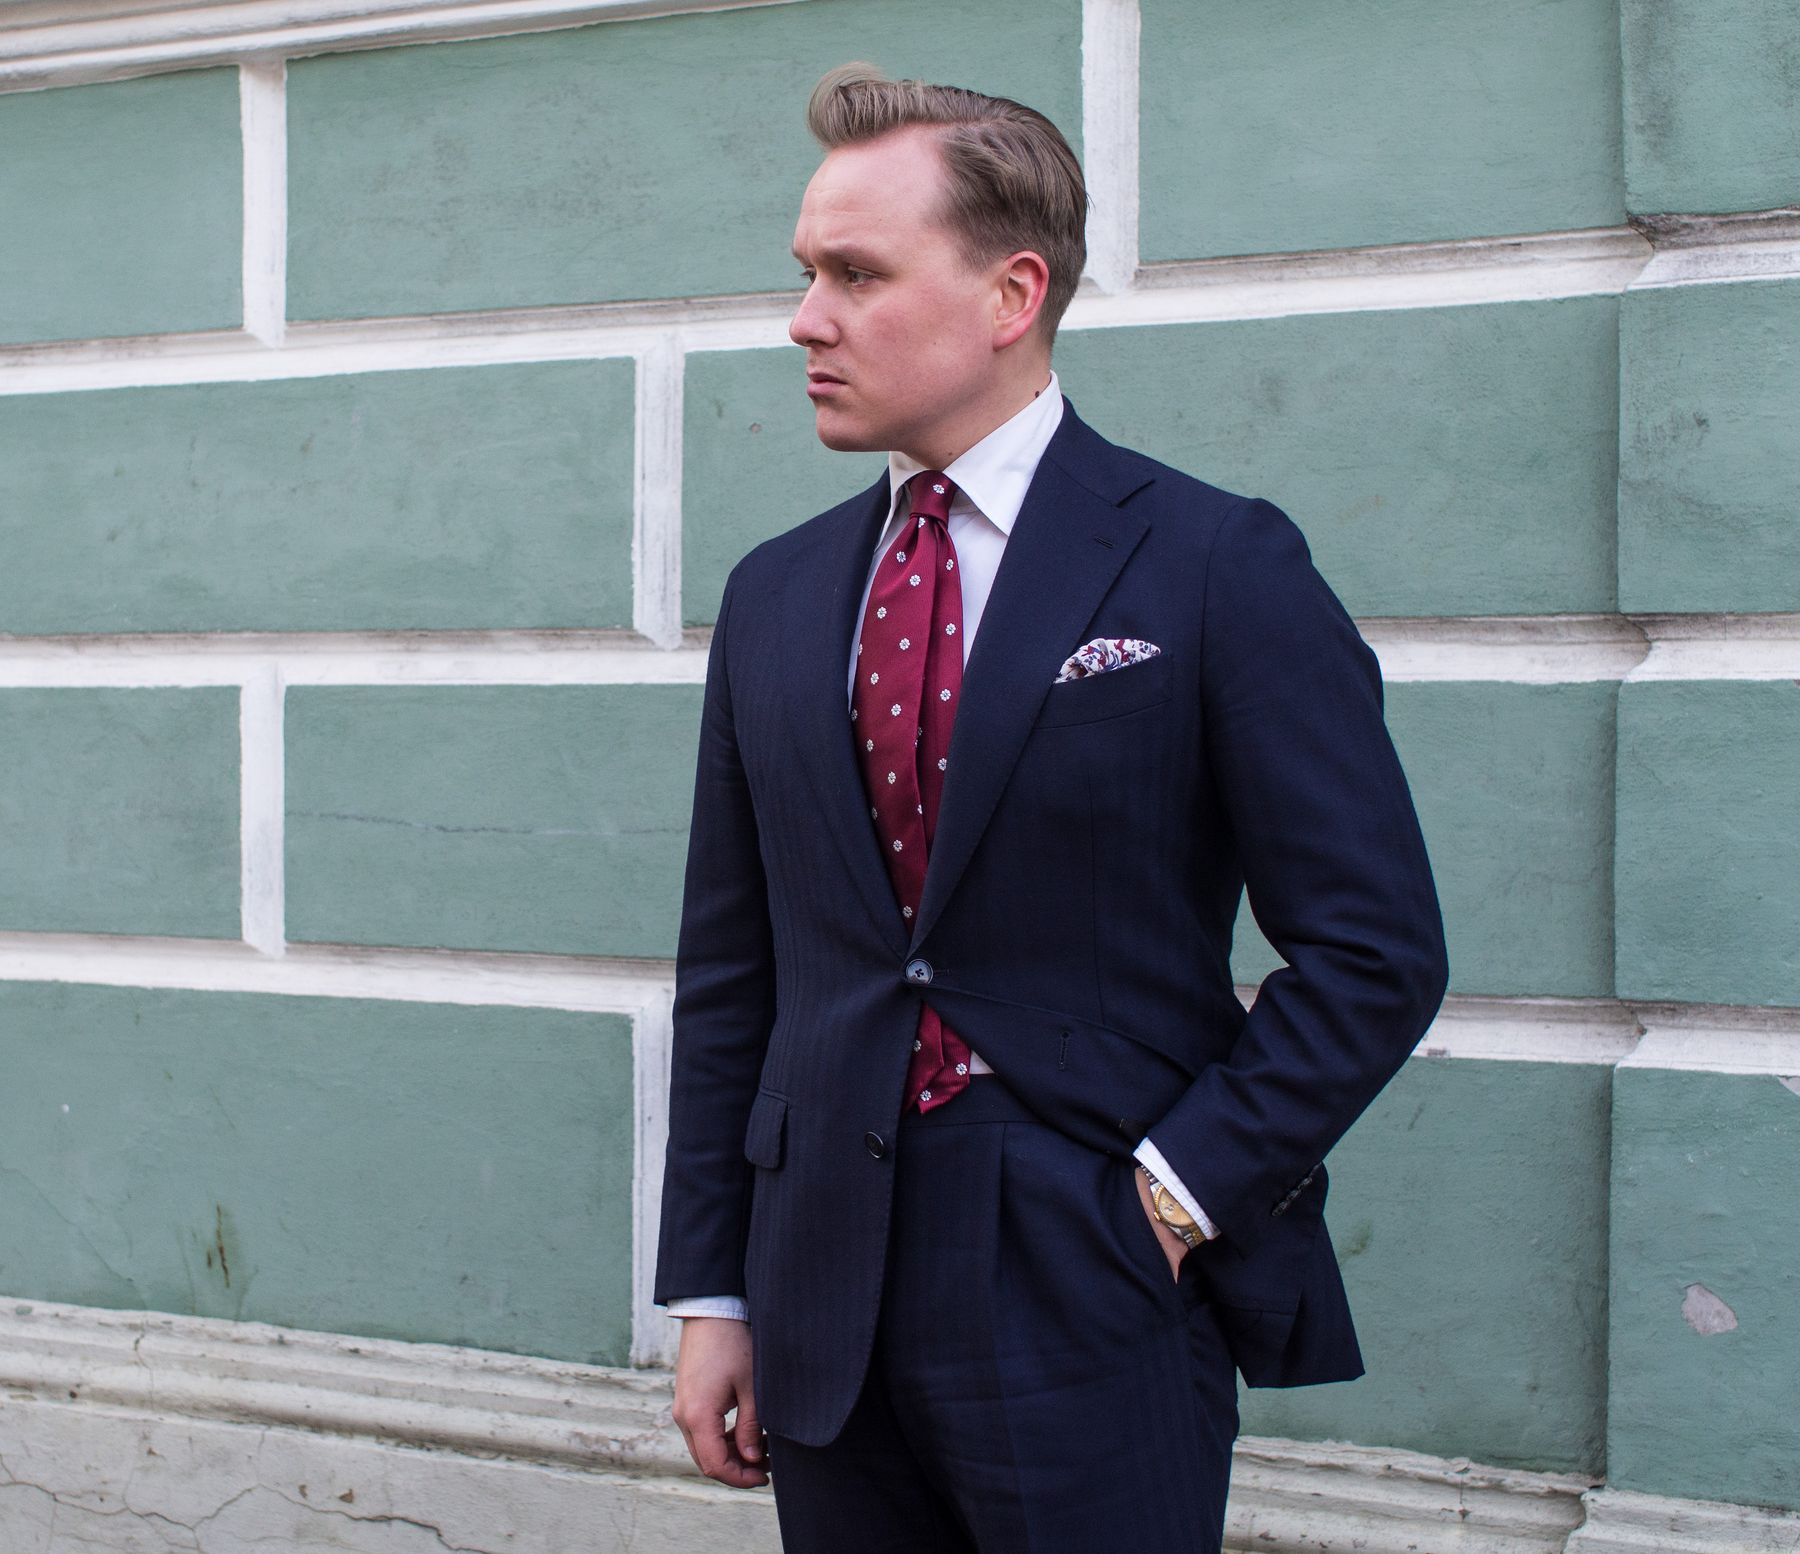 How to wear a red tie (without looking like you're caught in a time warp)